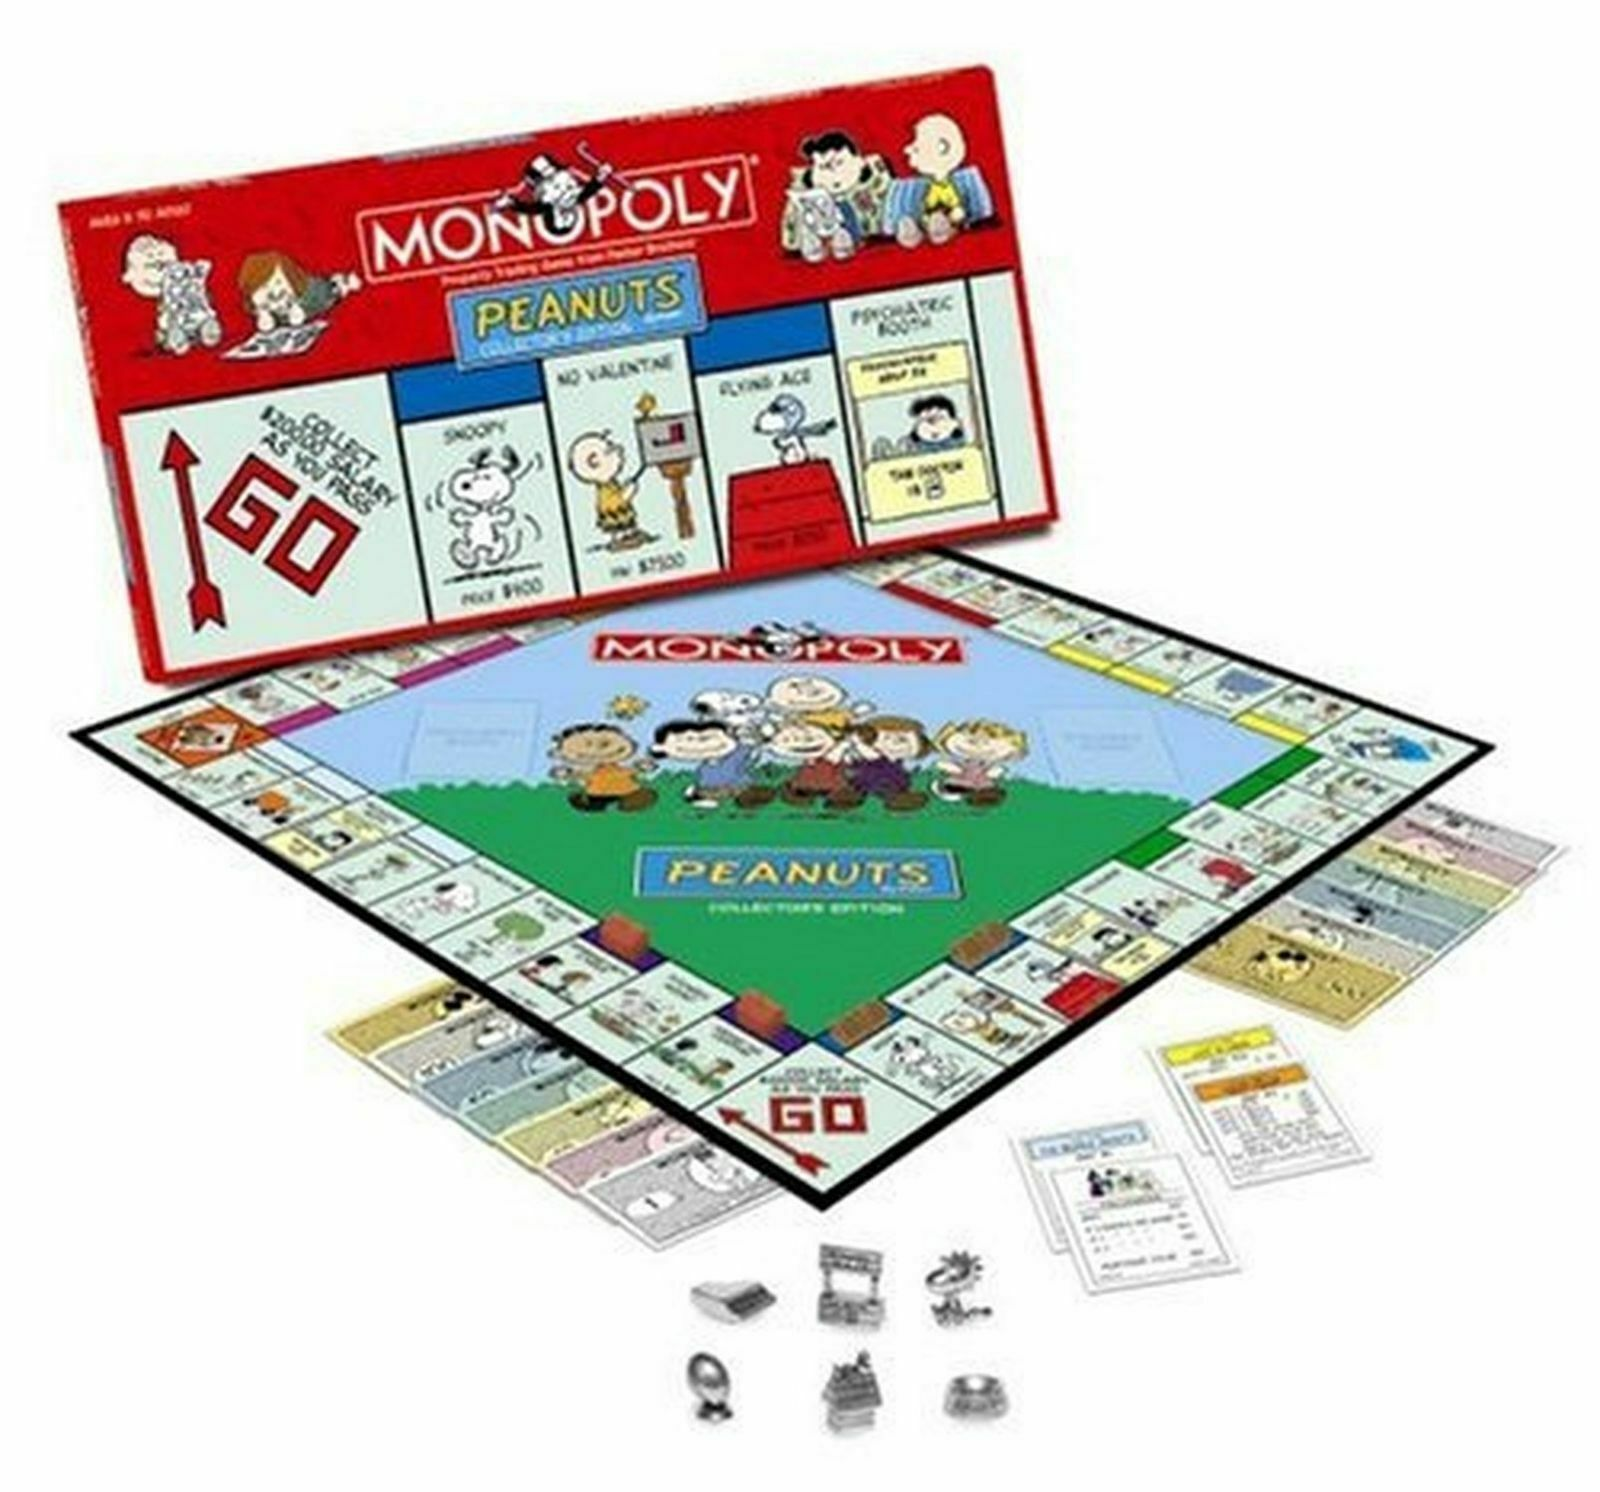 Peanuts Monopoly GameCollector's Limited Edition 2002Sealed